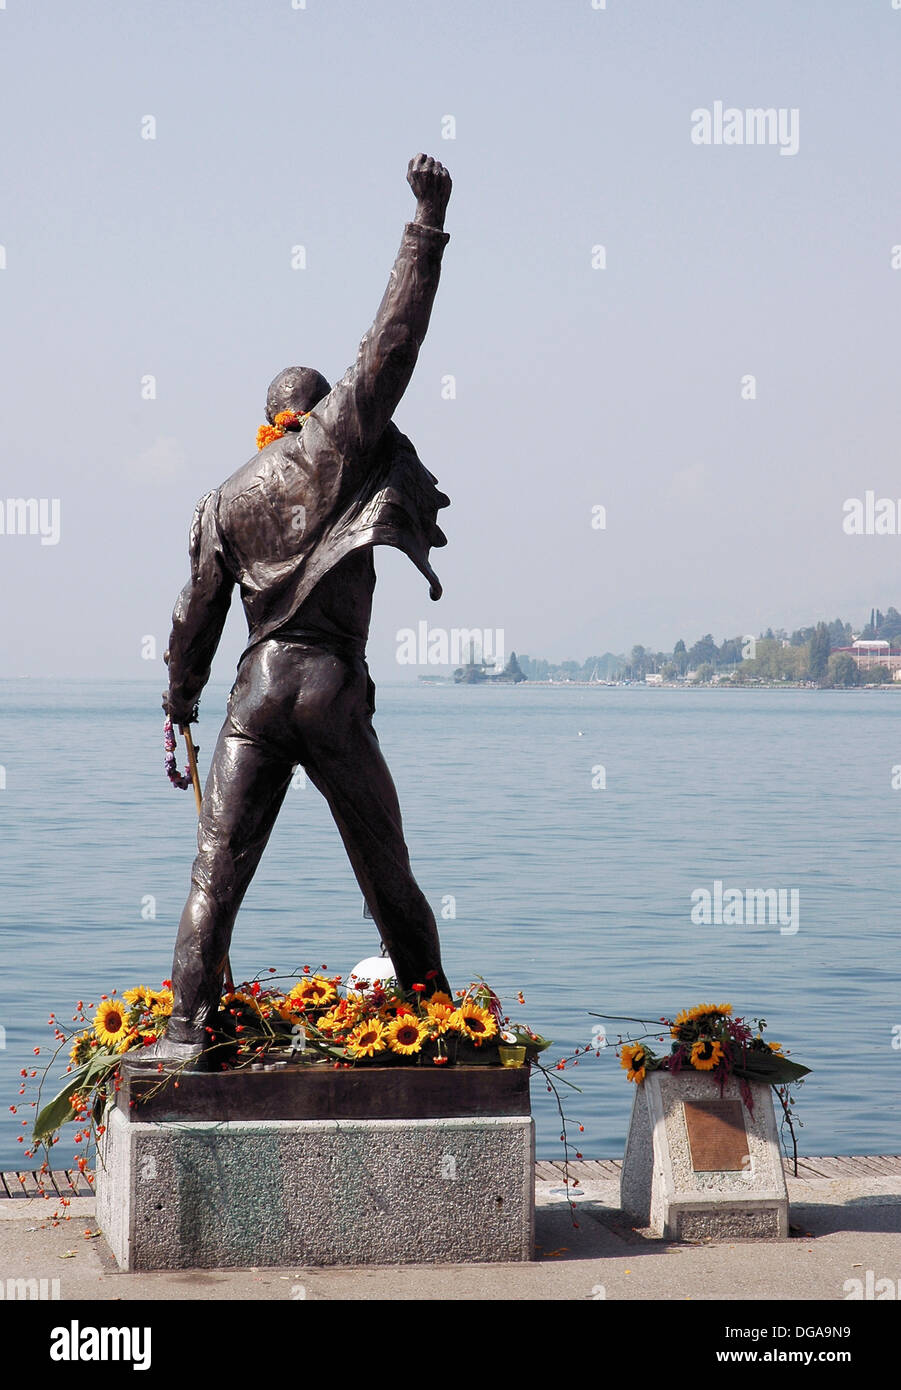 a statue of famous musician freddie mercury in montreux where the